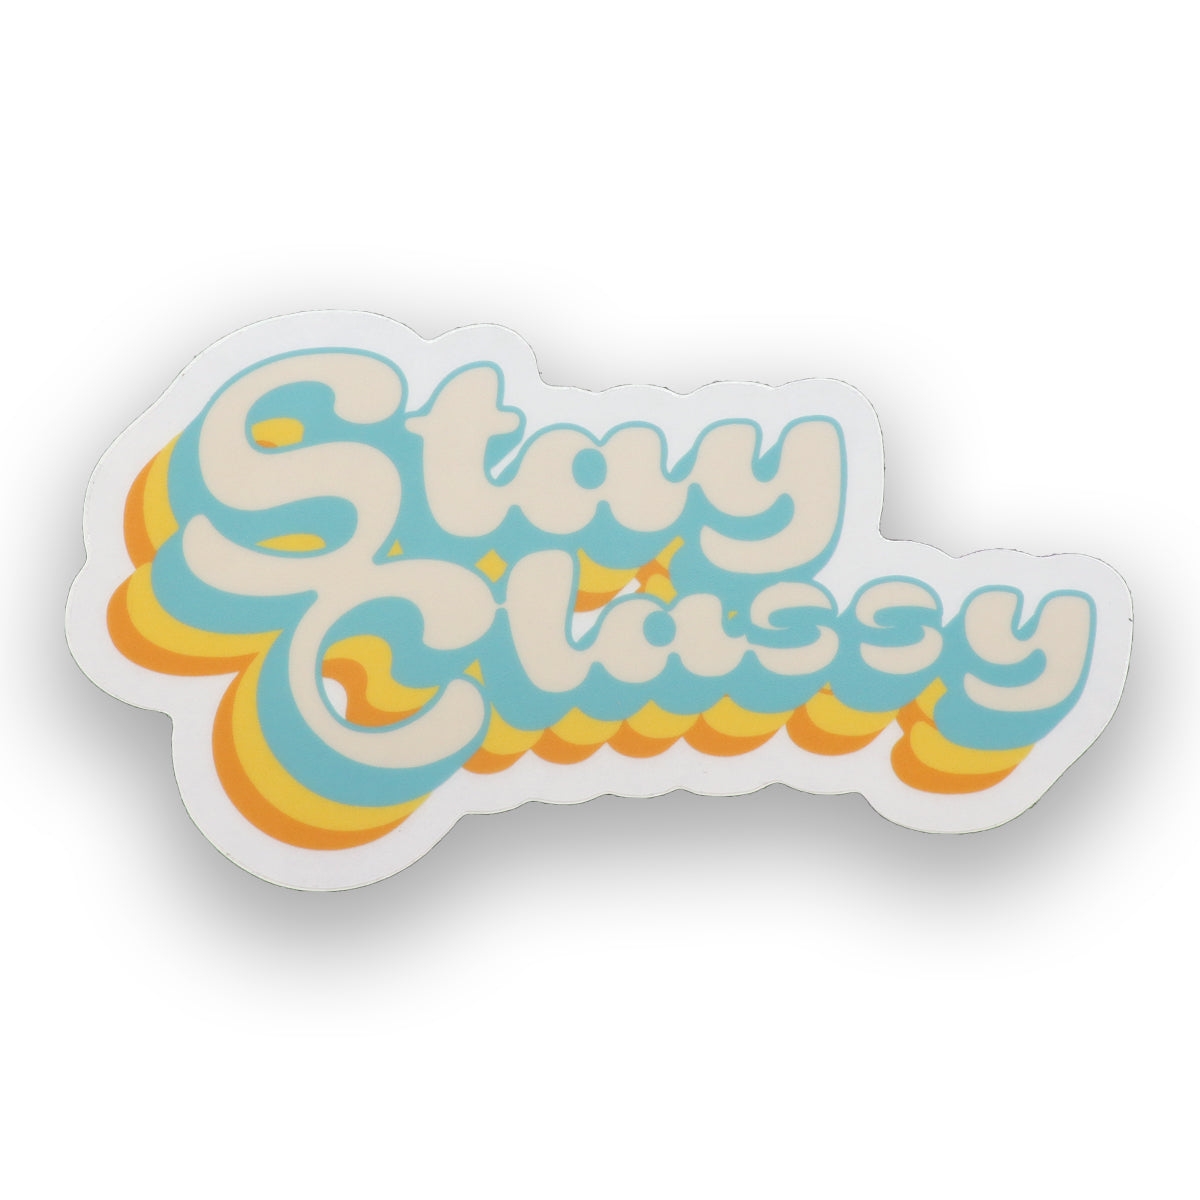 Stay Classy sticker in groovy letters. Four stack print on a one dimensional surface, top layer is cream, turquoise, orange, and burn orange. Always stay true but above all stay classy. Sold by SDTrading Co.